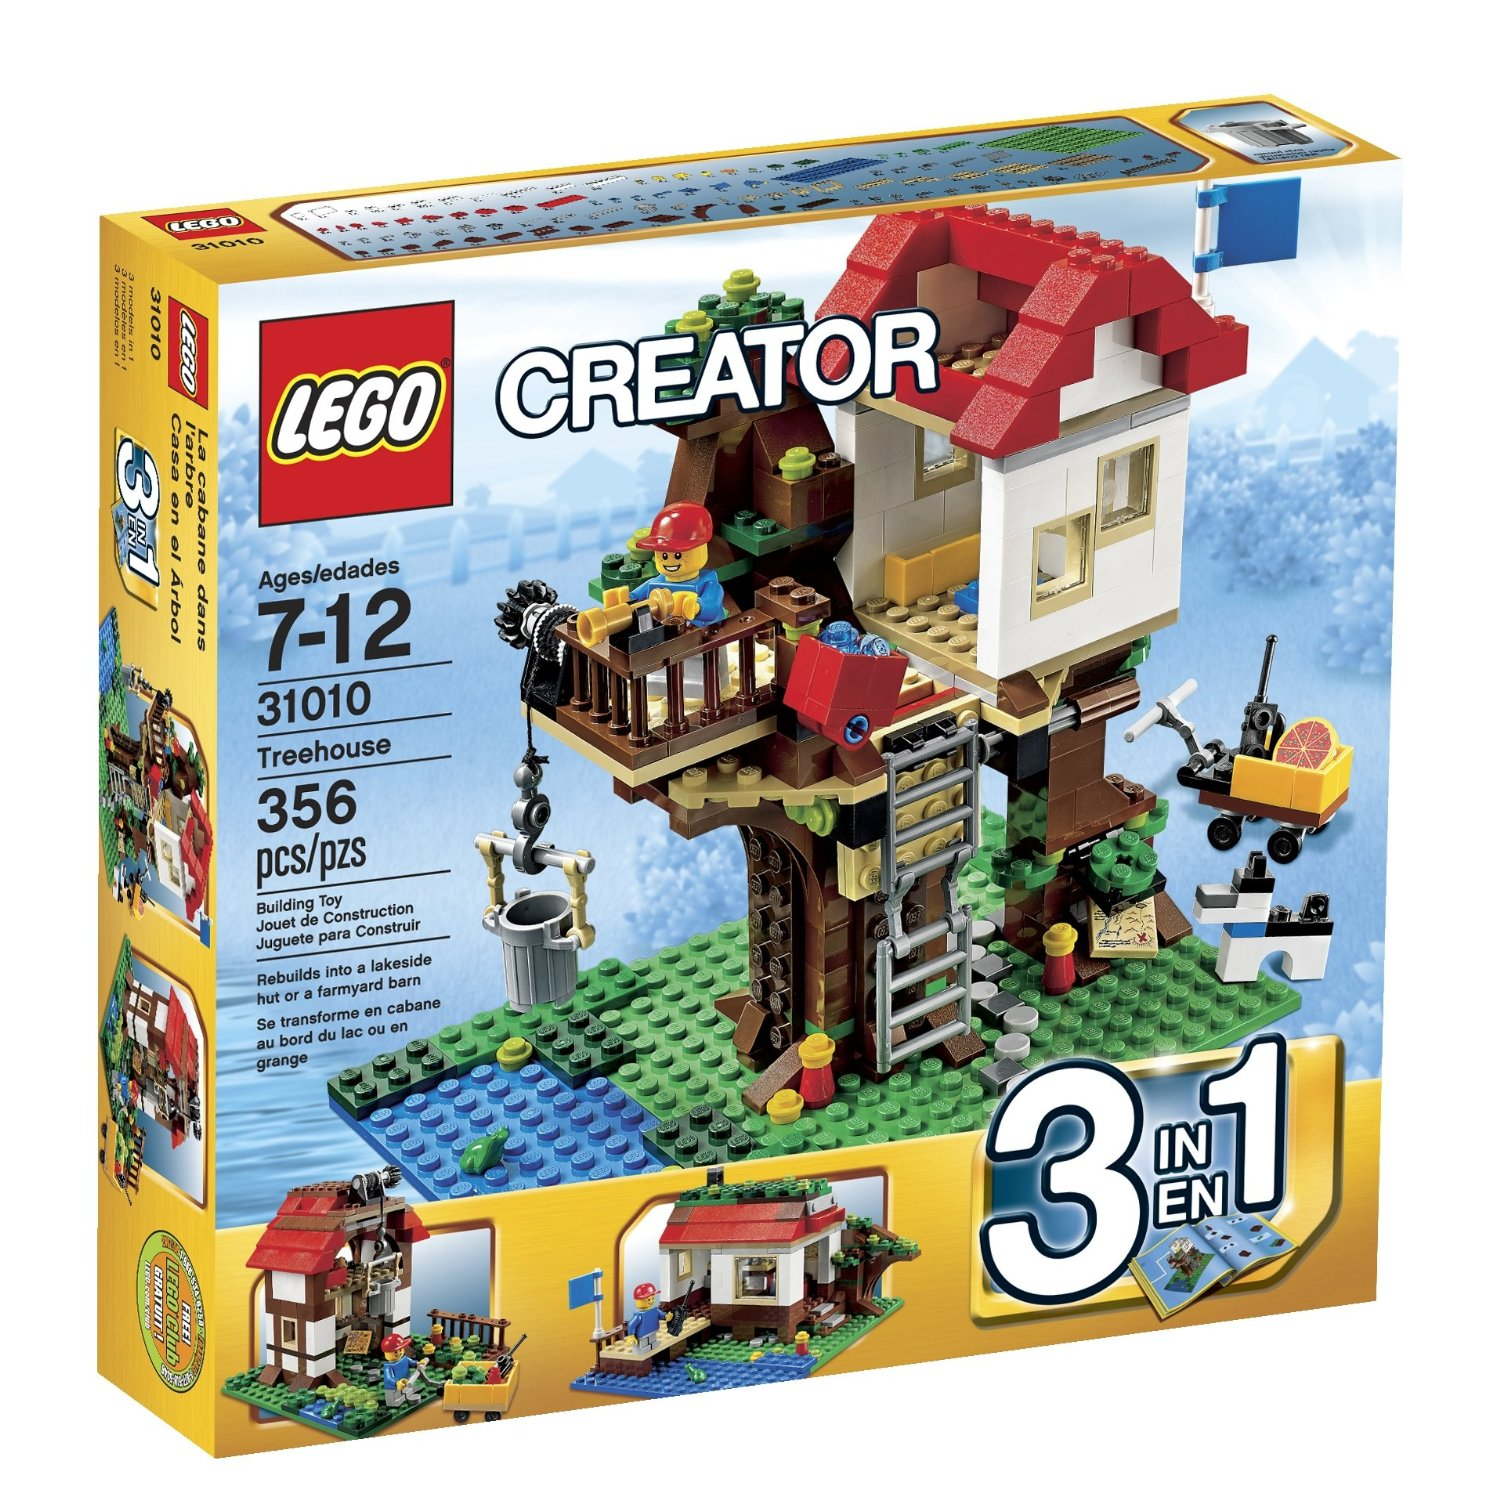 Toy Building Set For Boys : Lego creator toy sets for kids